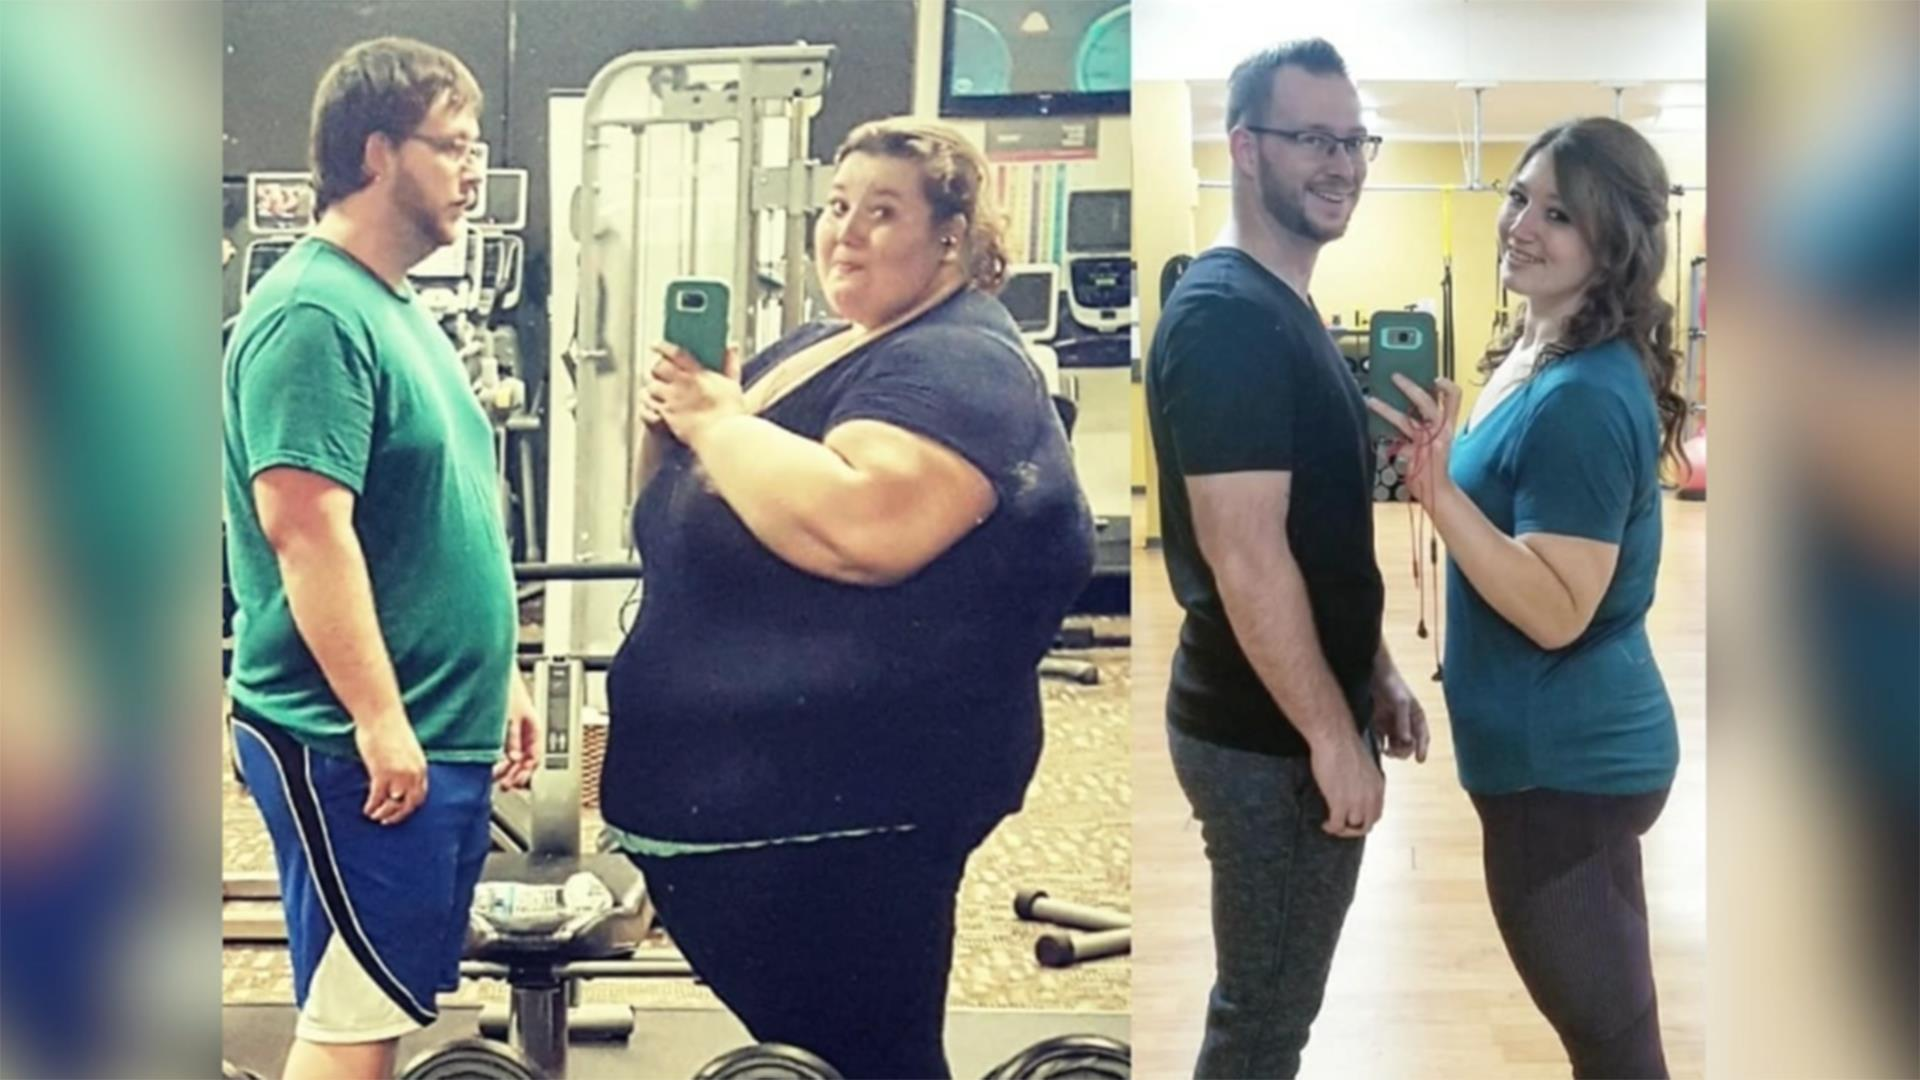 How to lose weight: Couple loses 215 pounds with diet and exercise